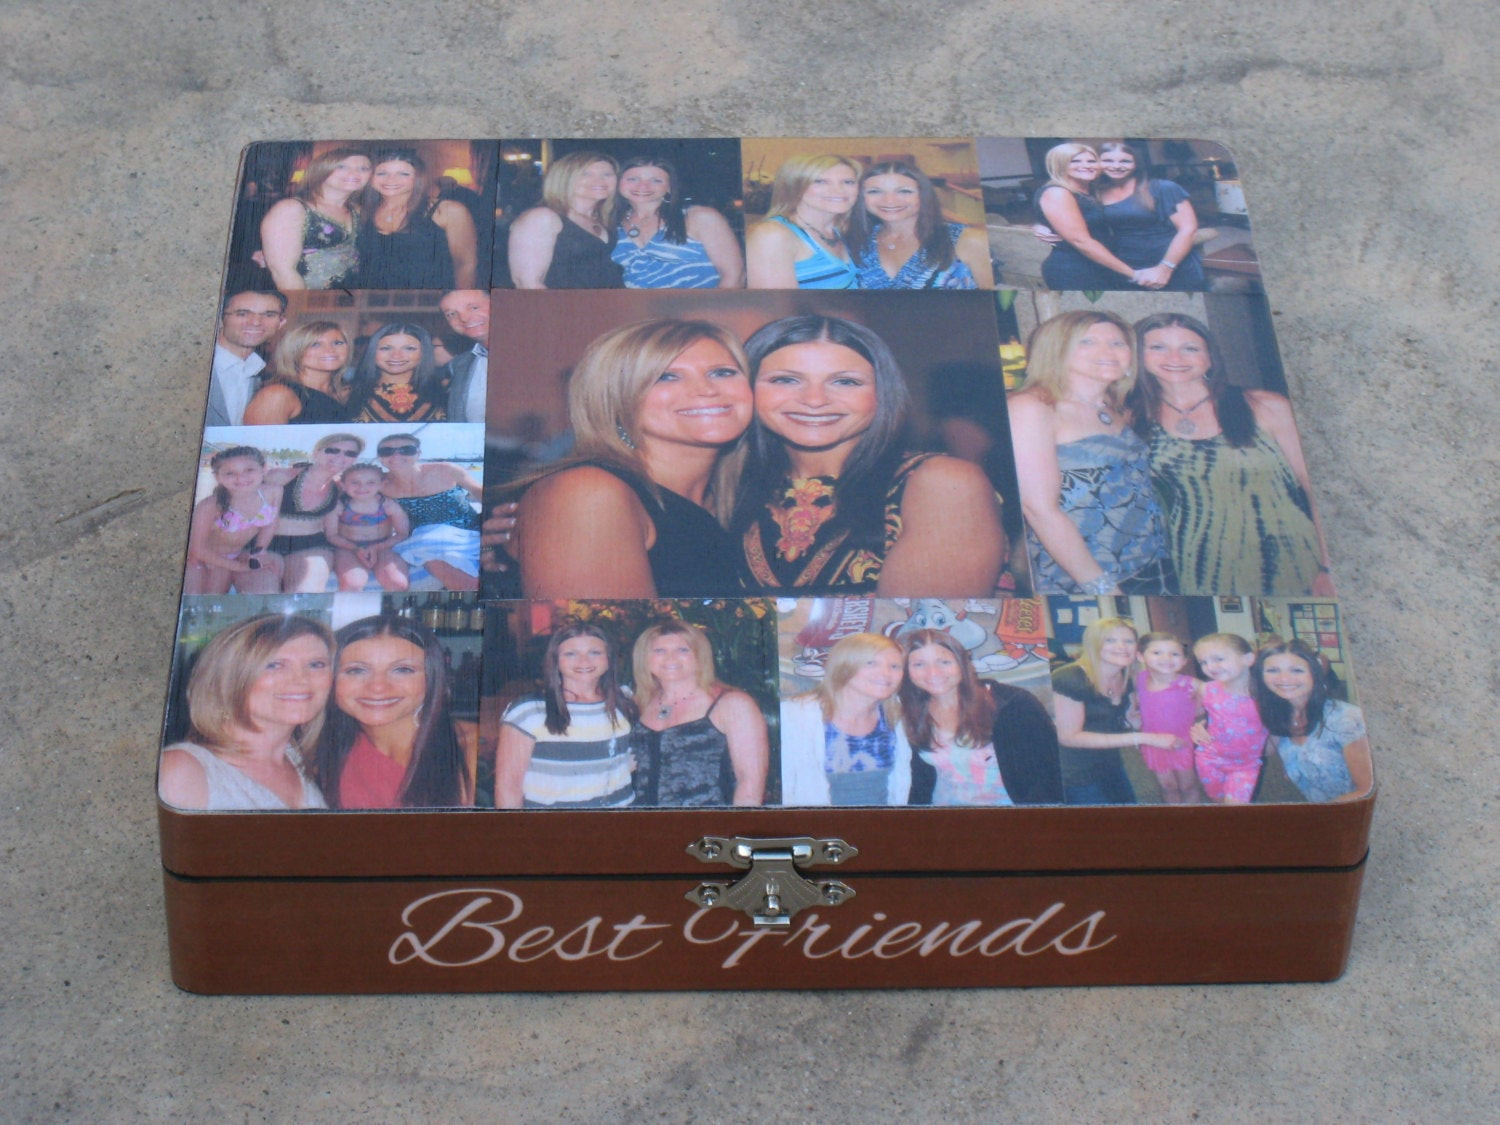 Best ideas about Custom Birthday Gifts . Save or Pin Best Friends Collage Keepsake Box Unique Maid of Honor Now.